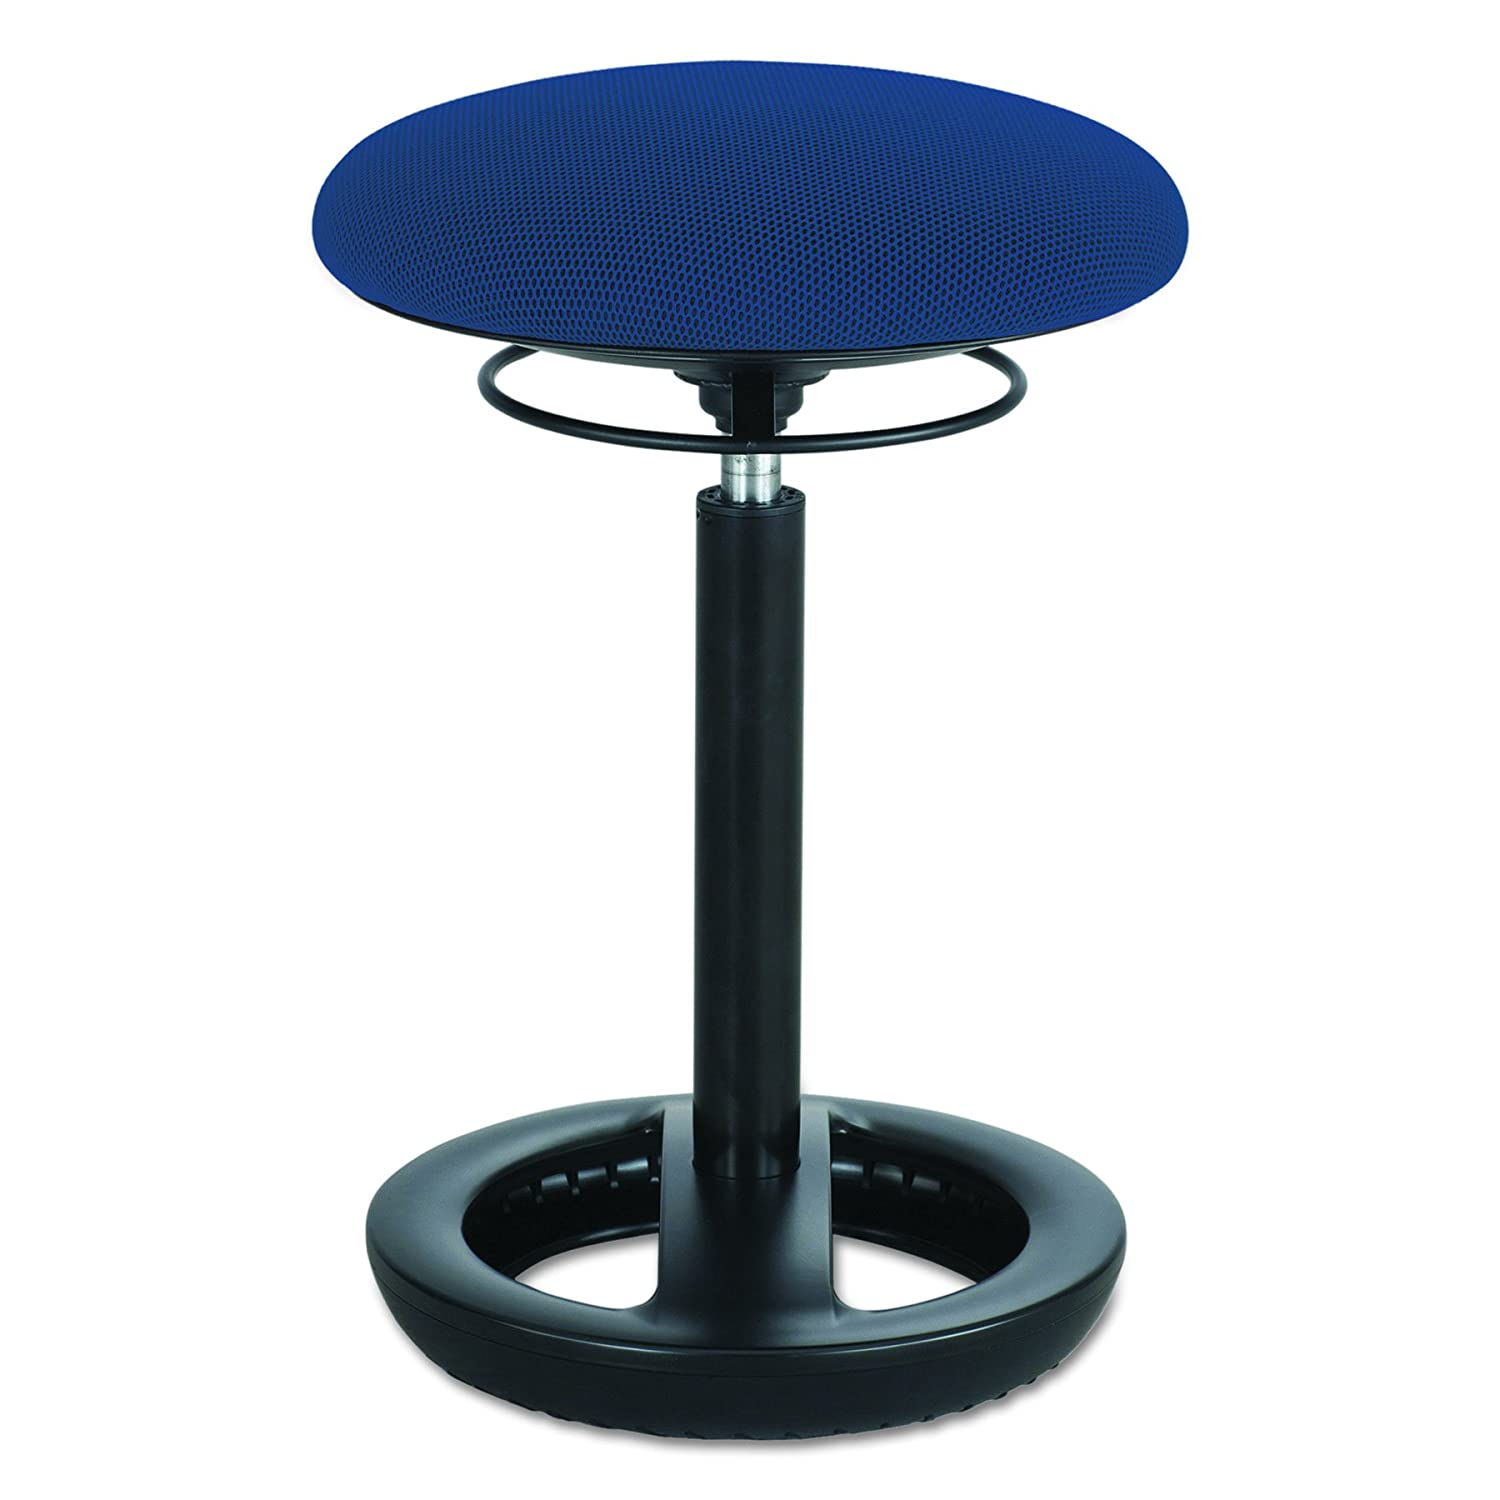 Safco Products Twixt Active Seating Chair, Desk Height, 3000BL, Active Seating, Pneumatic Height Adjustment, Easy Portability, Ergonomic Design